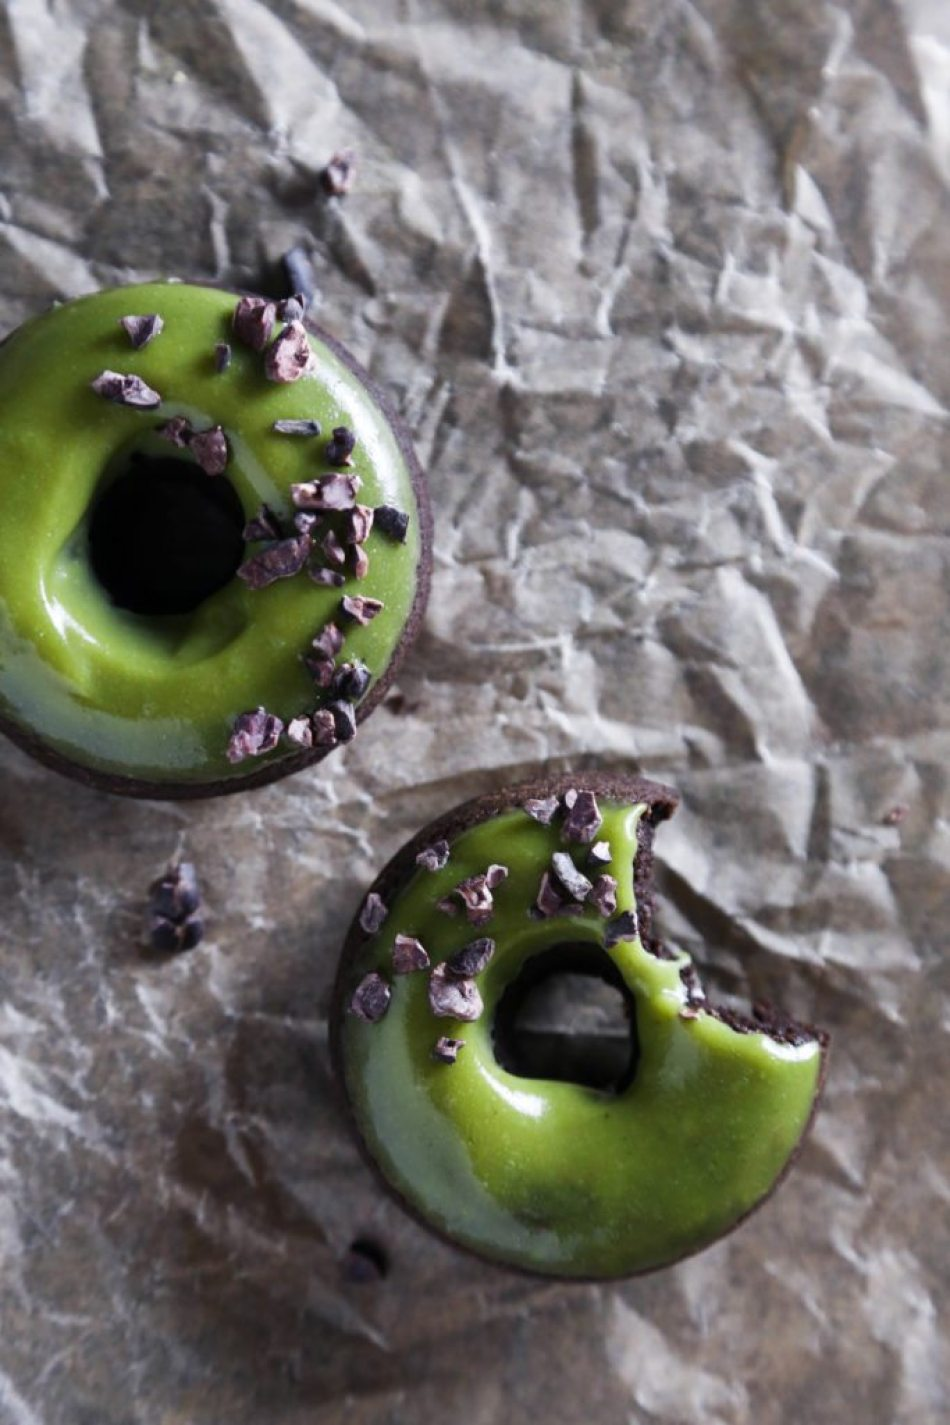 Baked Chocolate Doughnuts with Matcha Glaze | Free of dairy, gluten, and refined sugar!